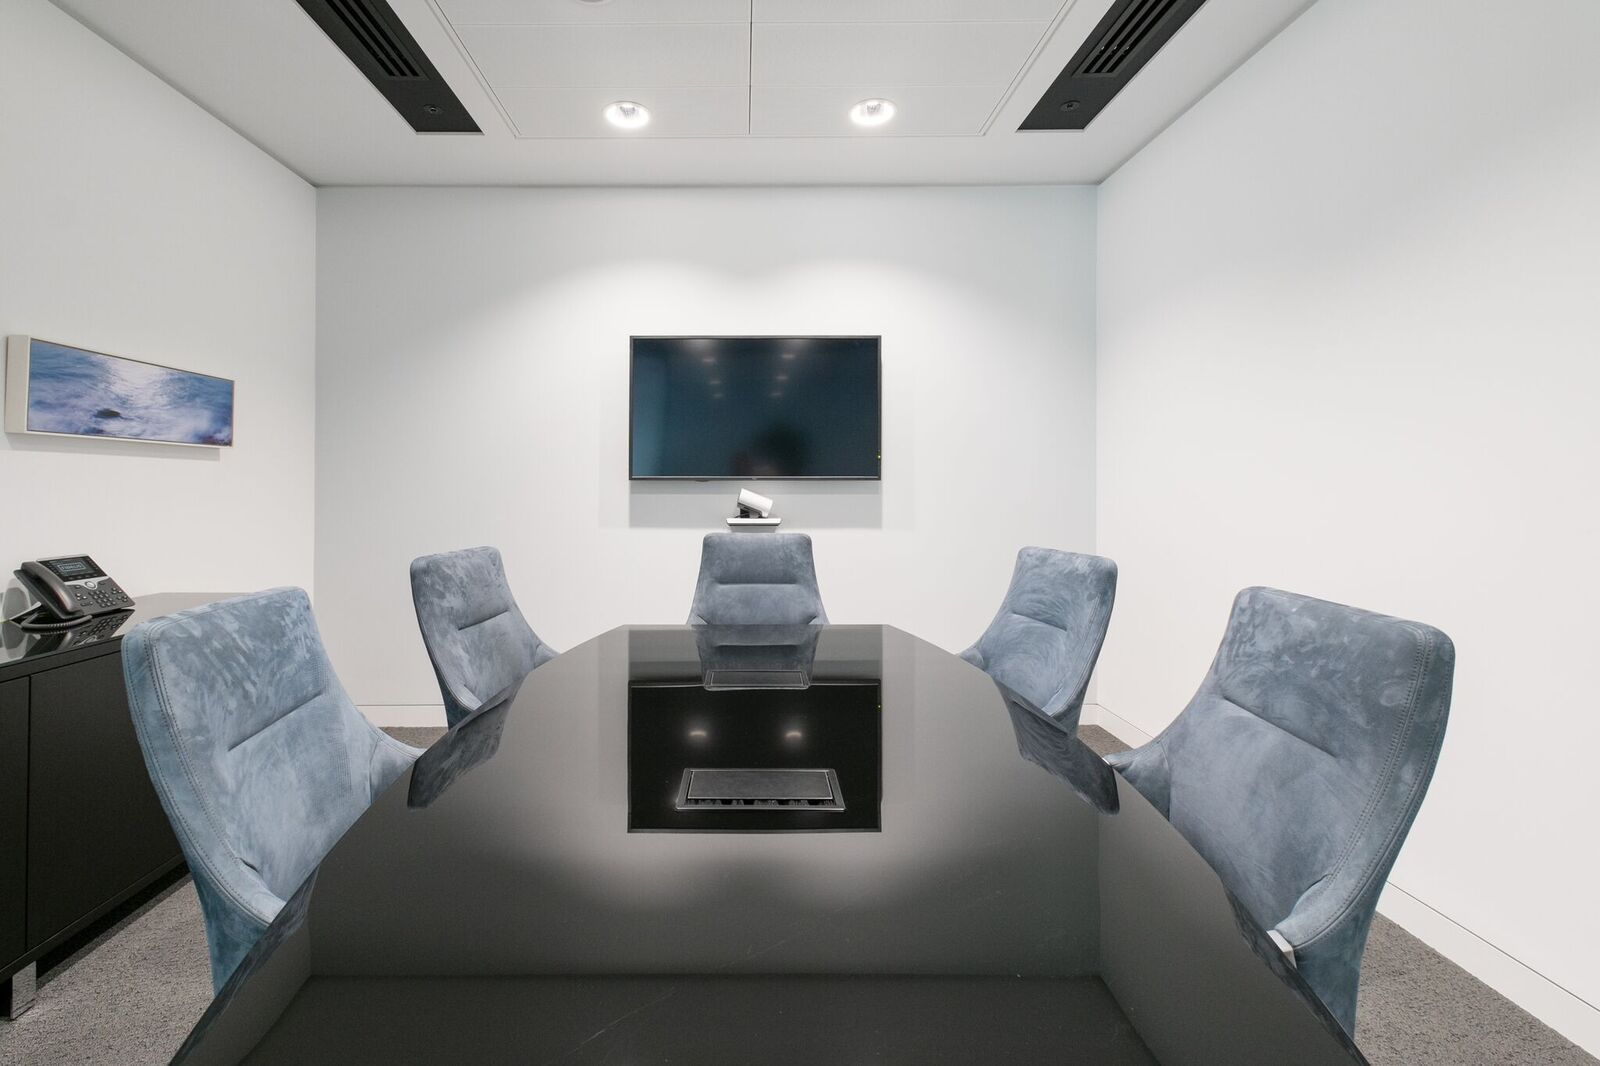 Meeting Room design by Advanced Interior Solutions